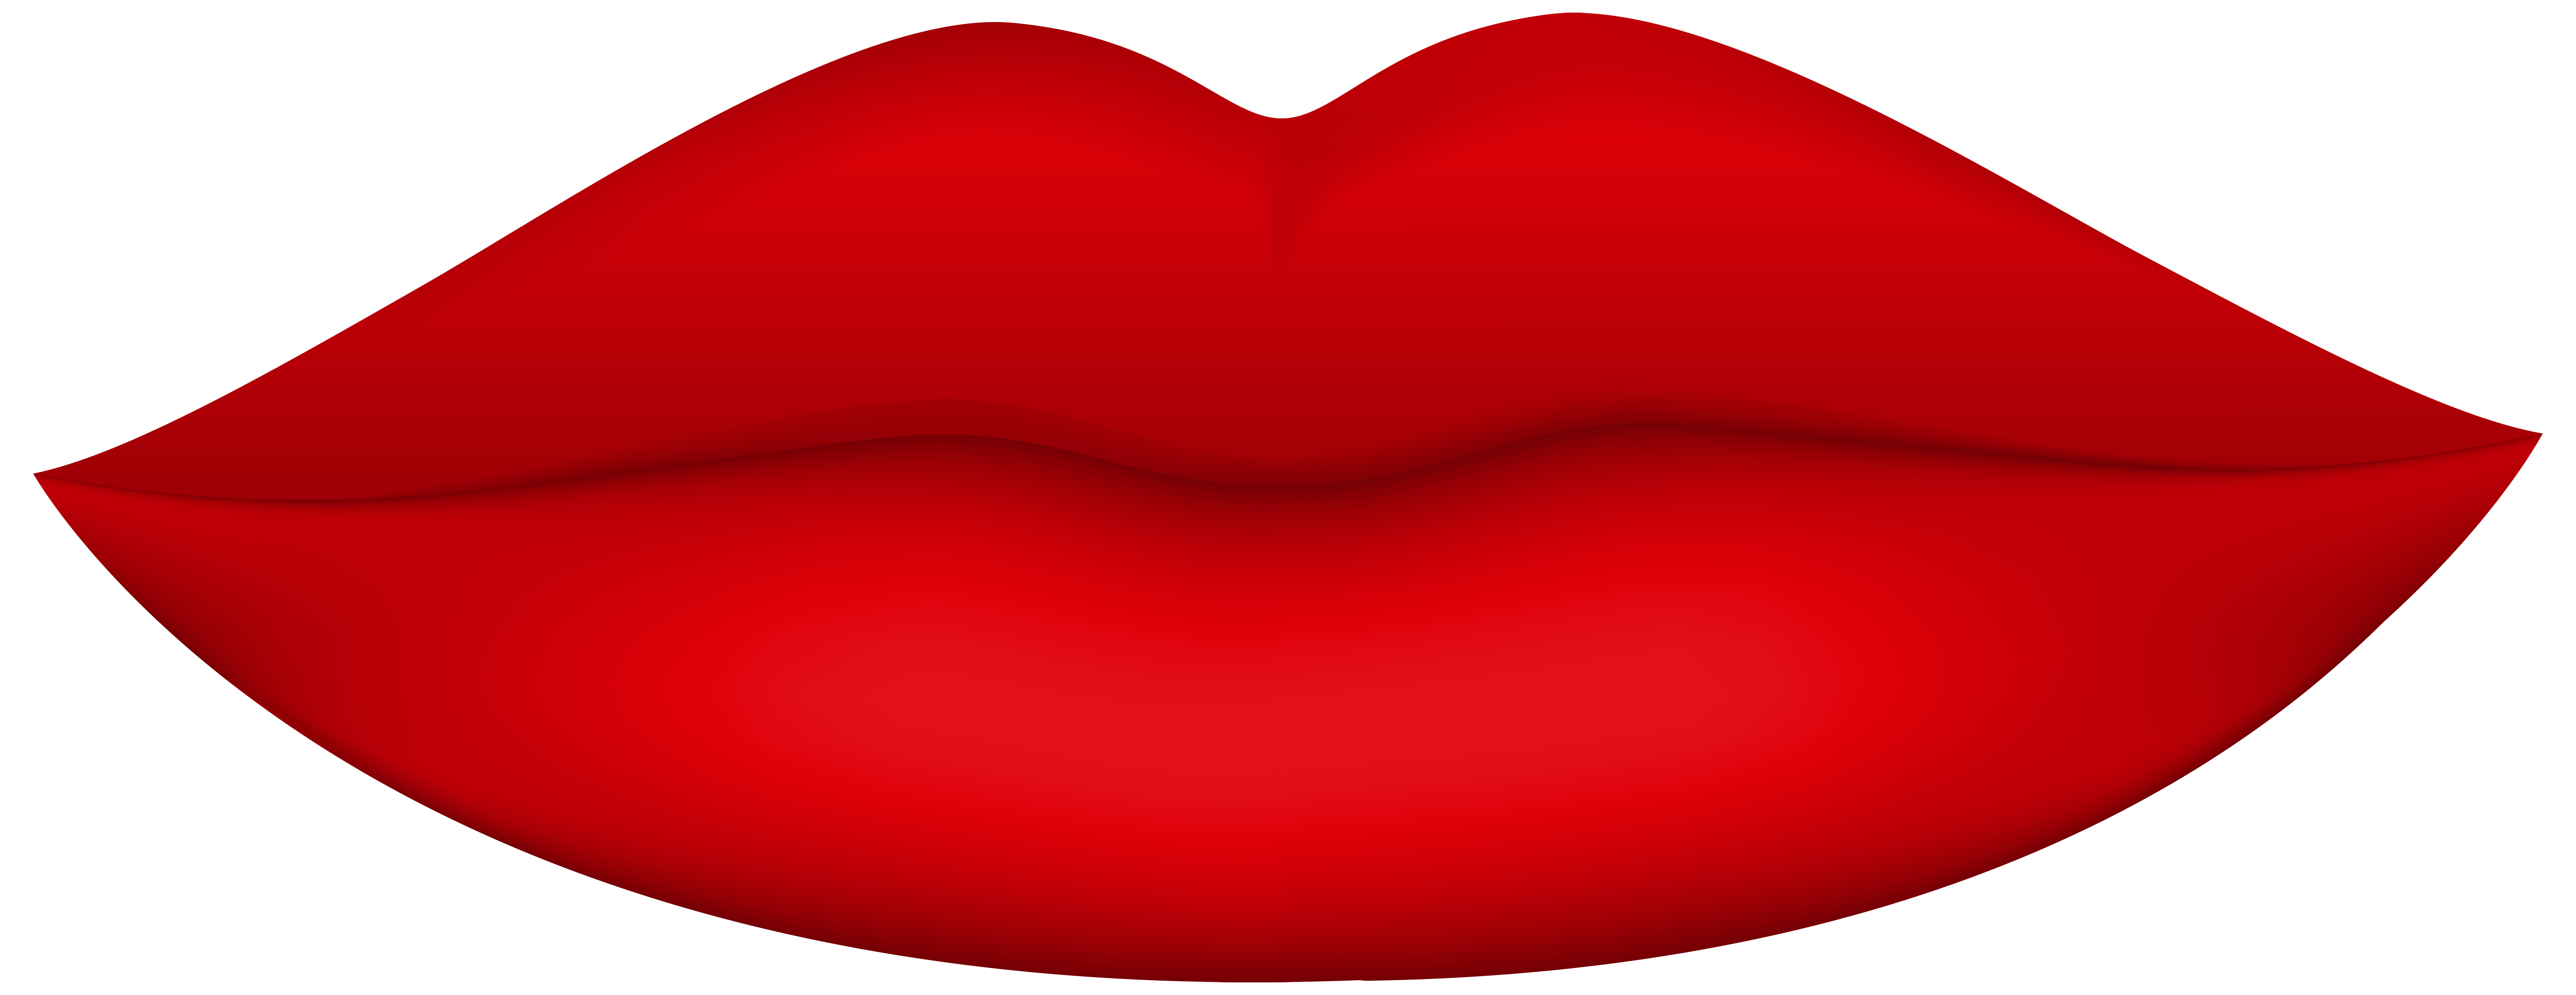 clipart free download Red png clip art. Lips clipart.